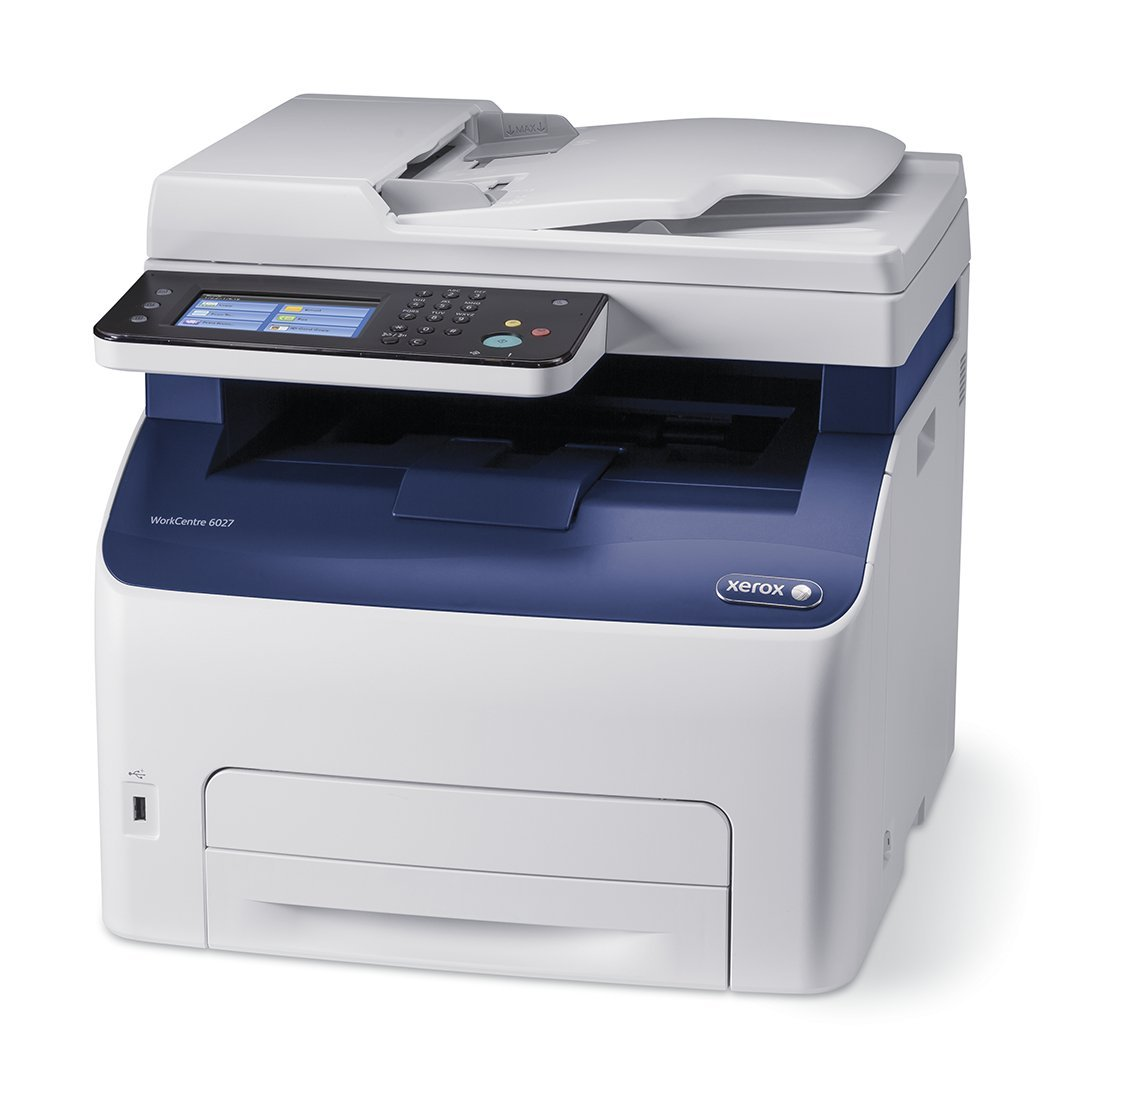 xerox workcentre 6027 driver download rh allprinterdriverdownloads com xerox workcentre 4265 manual xerox workcentre 4260 service manual